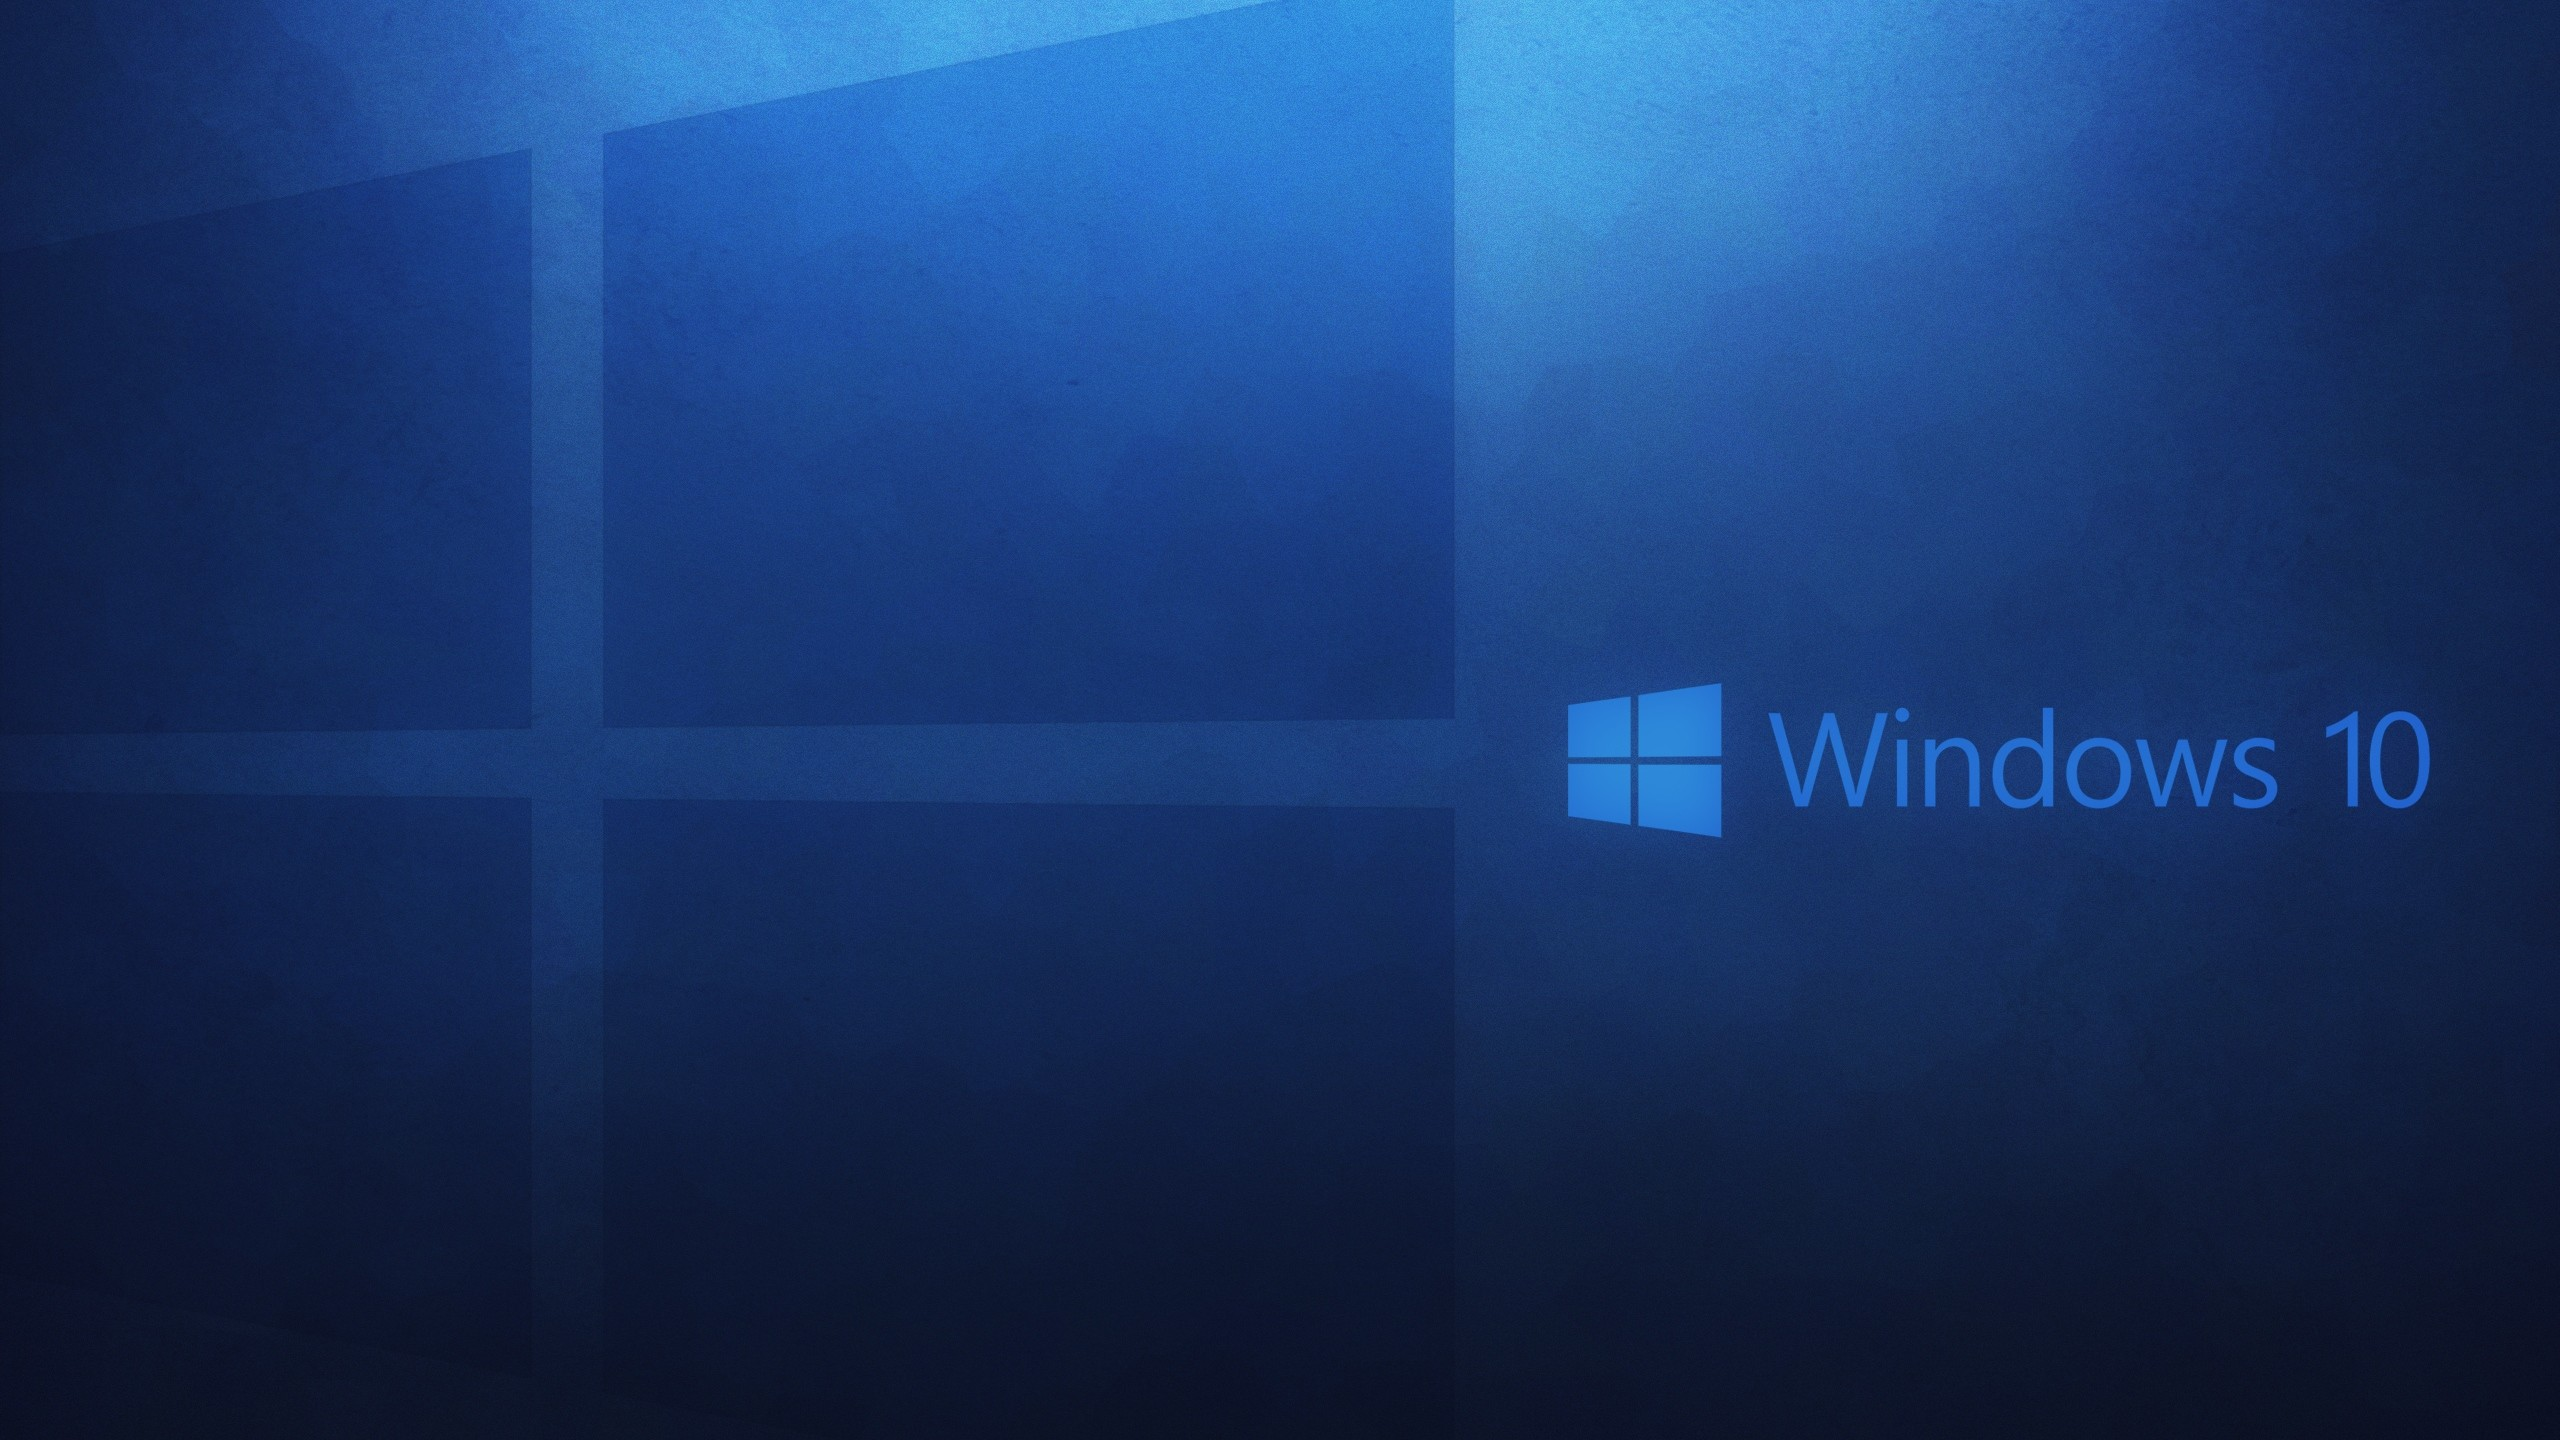 2560x1440 wallpaper windows 10 (73+ images)